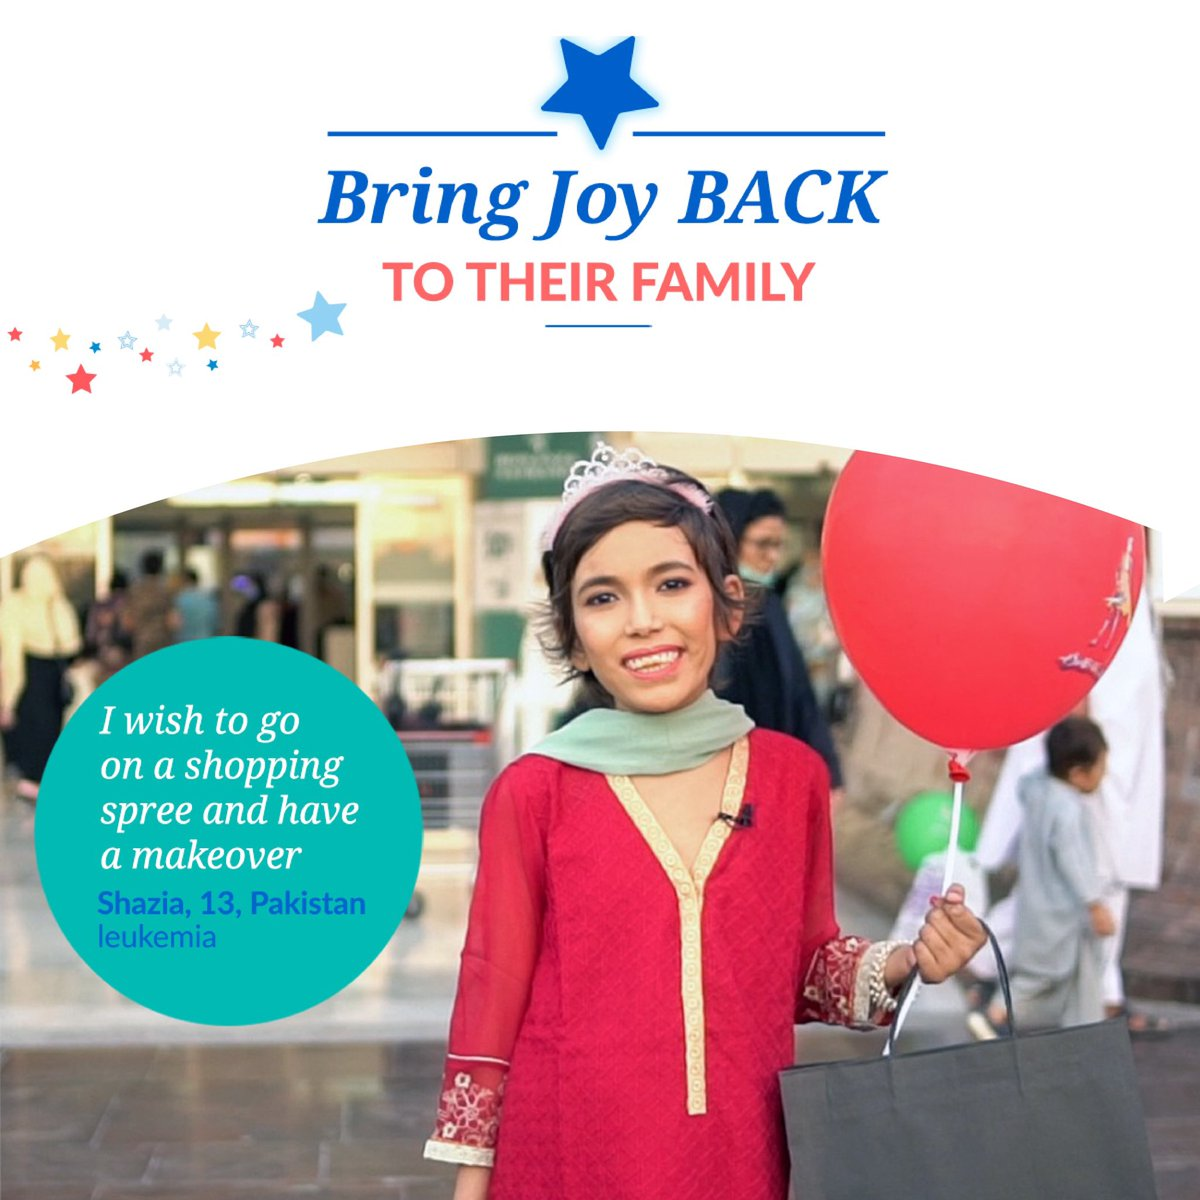 """""""This was the first time in my life that I forgot all about my illness, and I felt like a normal child."""" Shazia said. Make-A-Wish Pakistan granted Shazia's wish to go on a shopping spree and have a makeover.   #BringJoyBACK #makeawish #wishstory"""